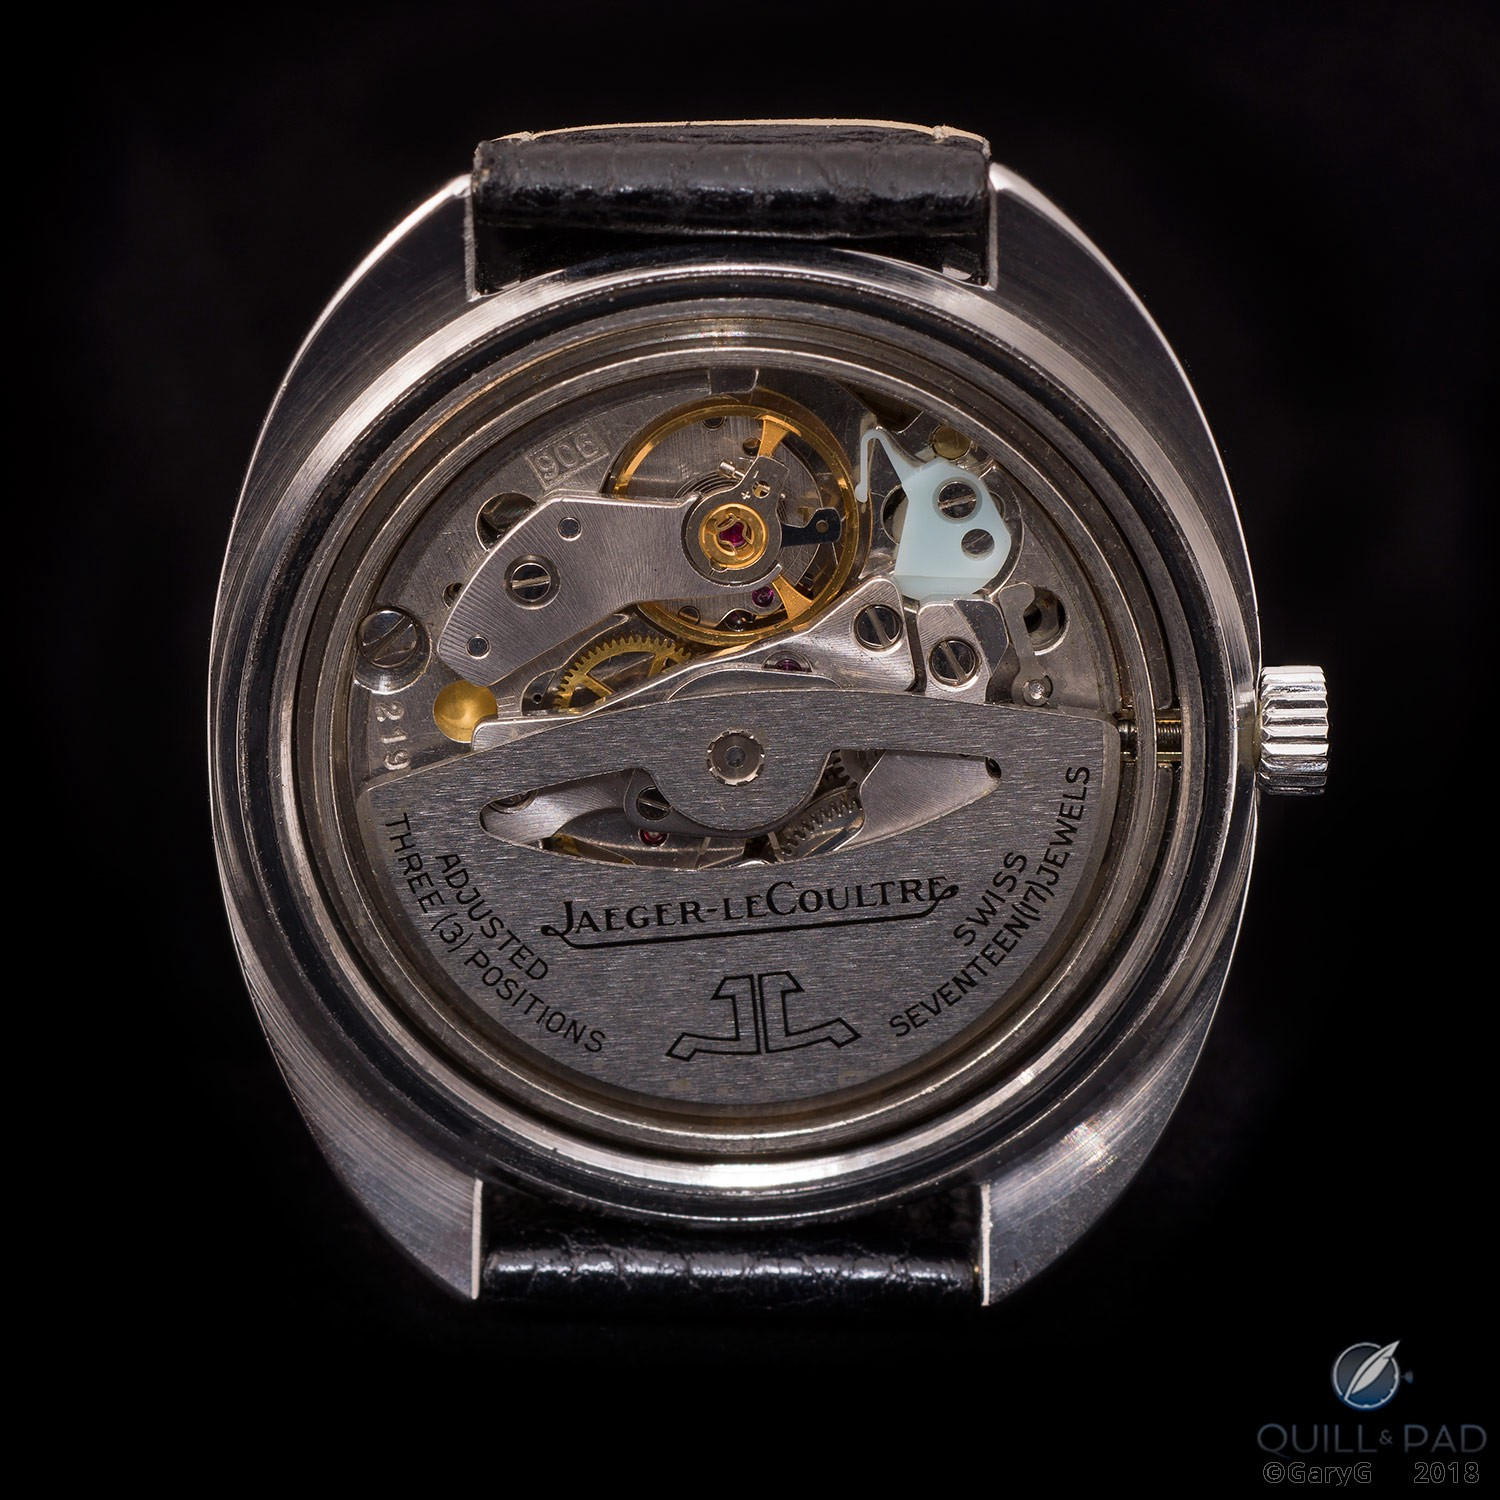 Jaeger-LeCoultre Caliber 906 with hacking mechanism visible at upper right